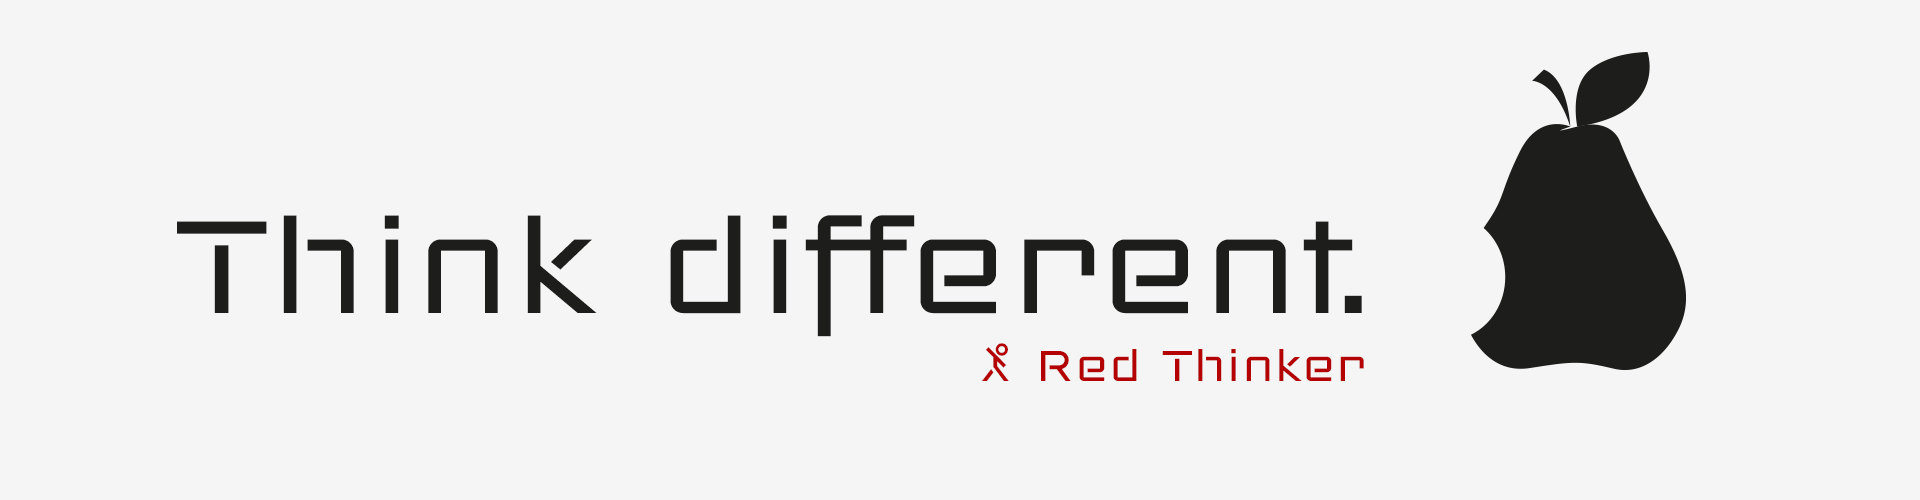 Red Thinker Typefaces- Think different